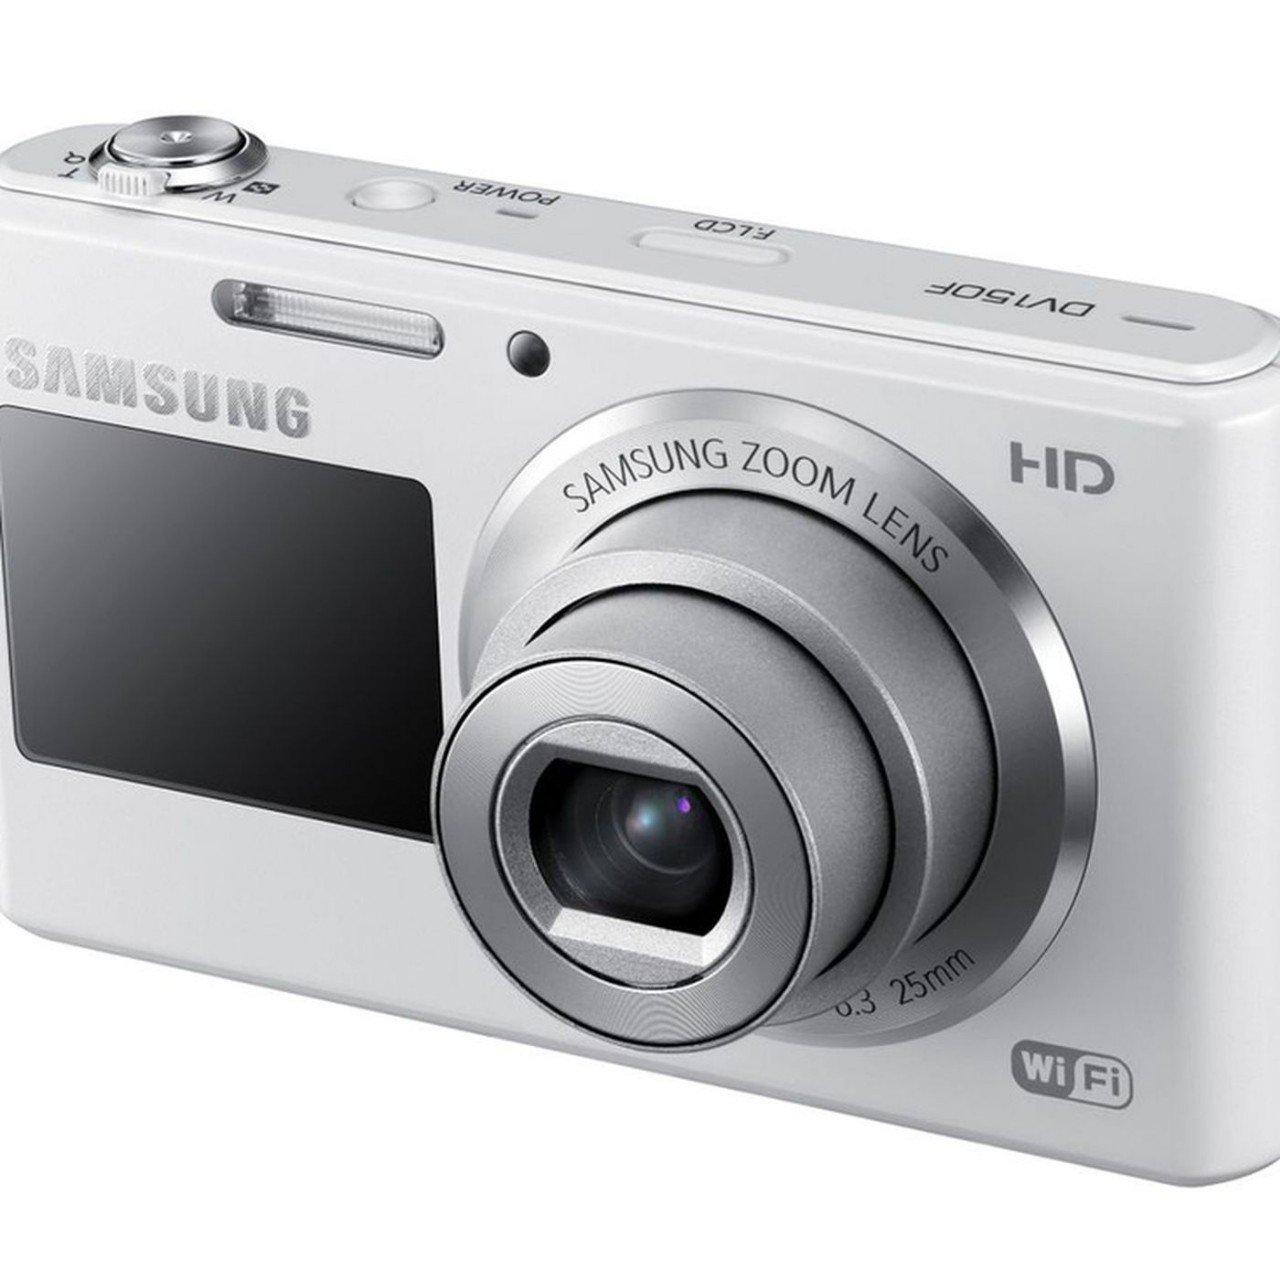 Samsung unveils five new point-and-shoot cameras with Wi-Fi